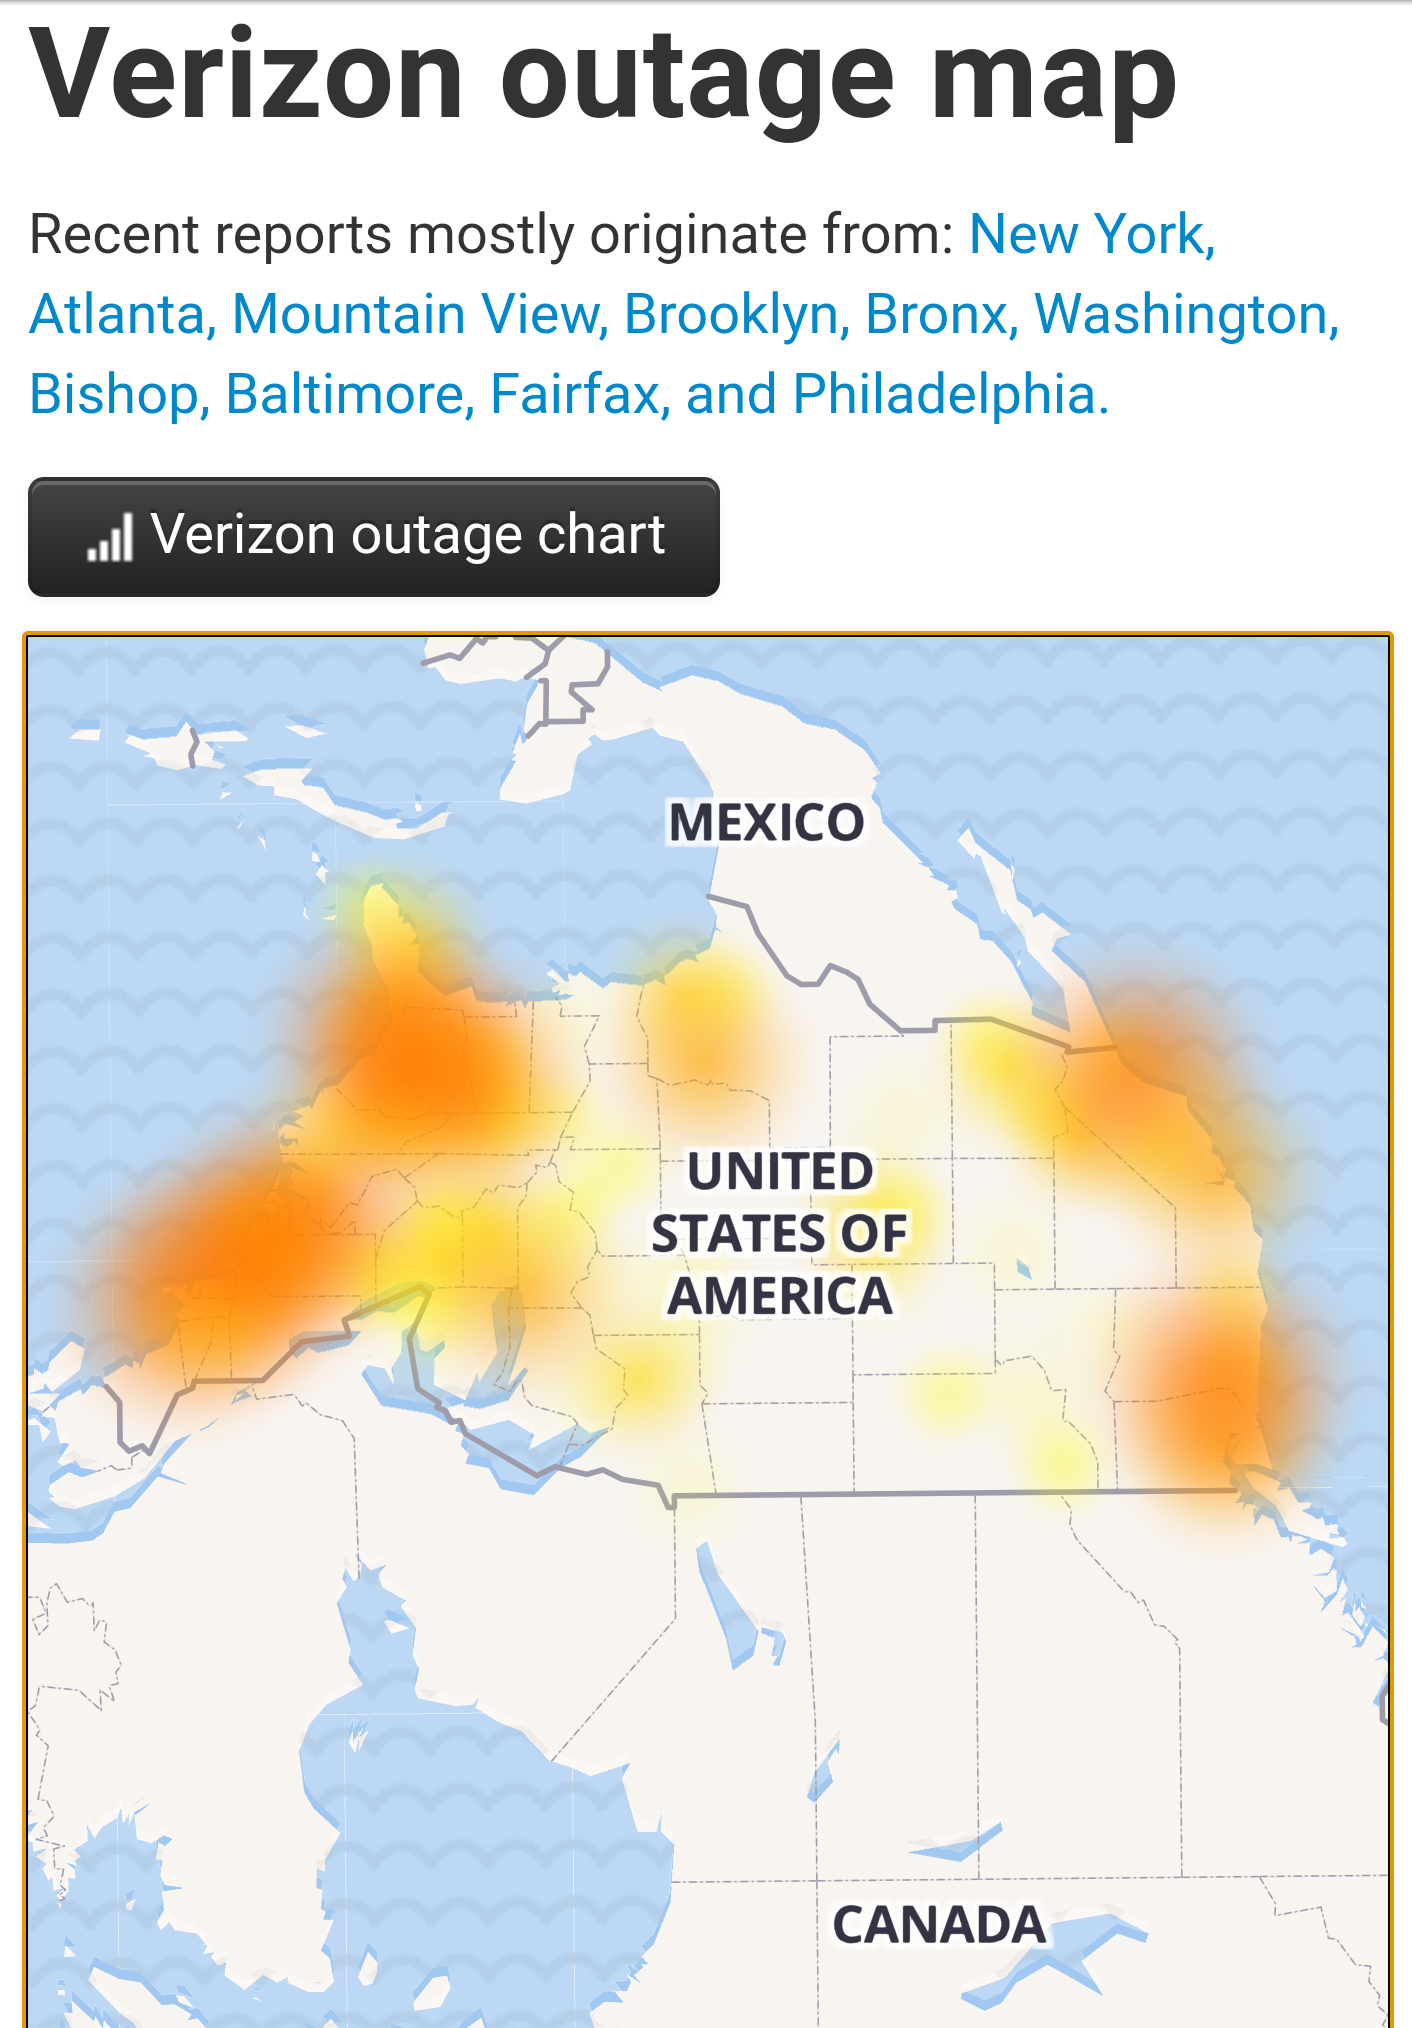 Verizon outage turns the United States upside down.